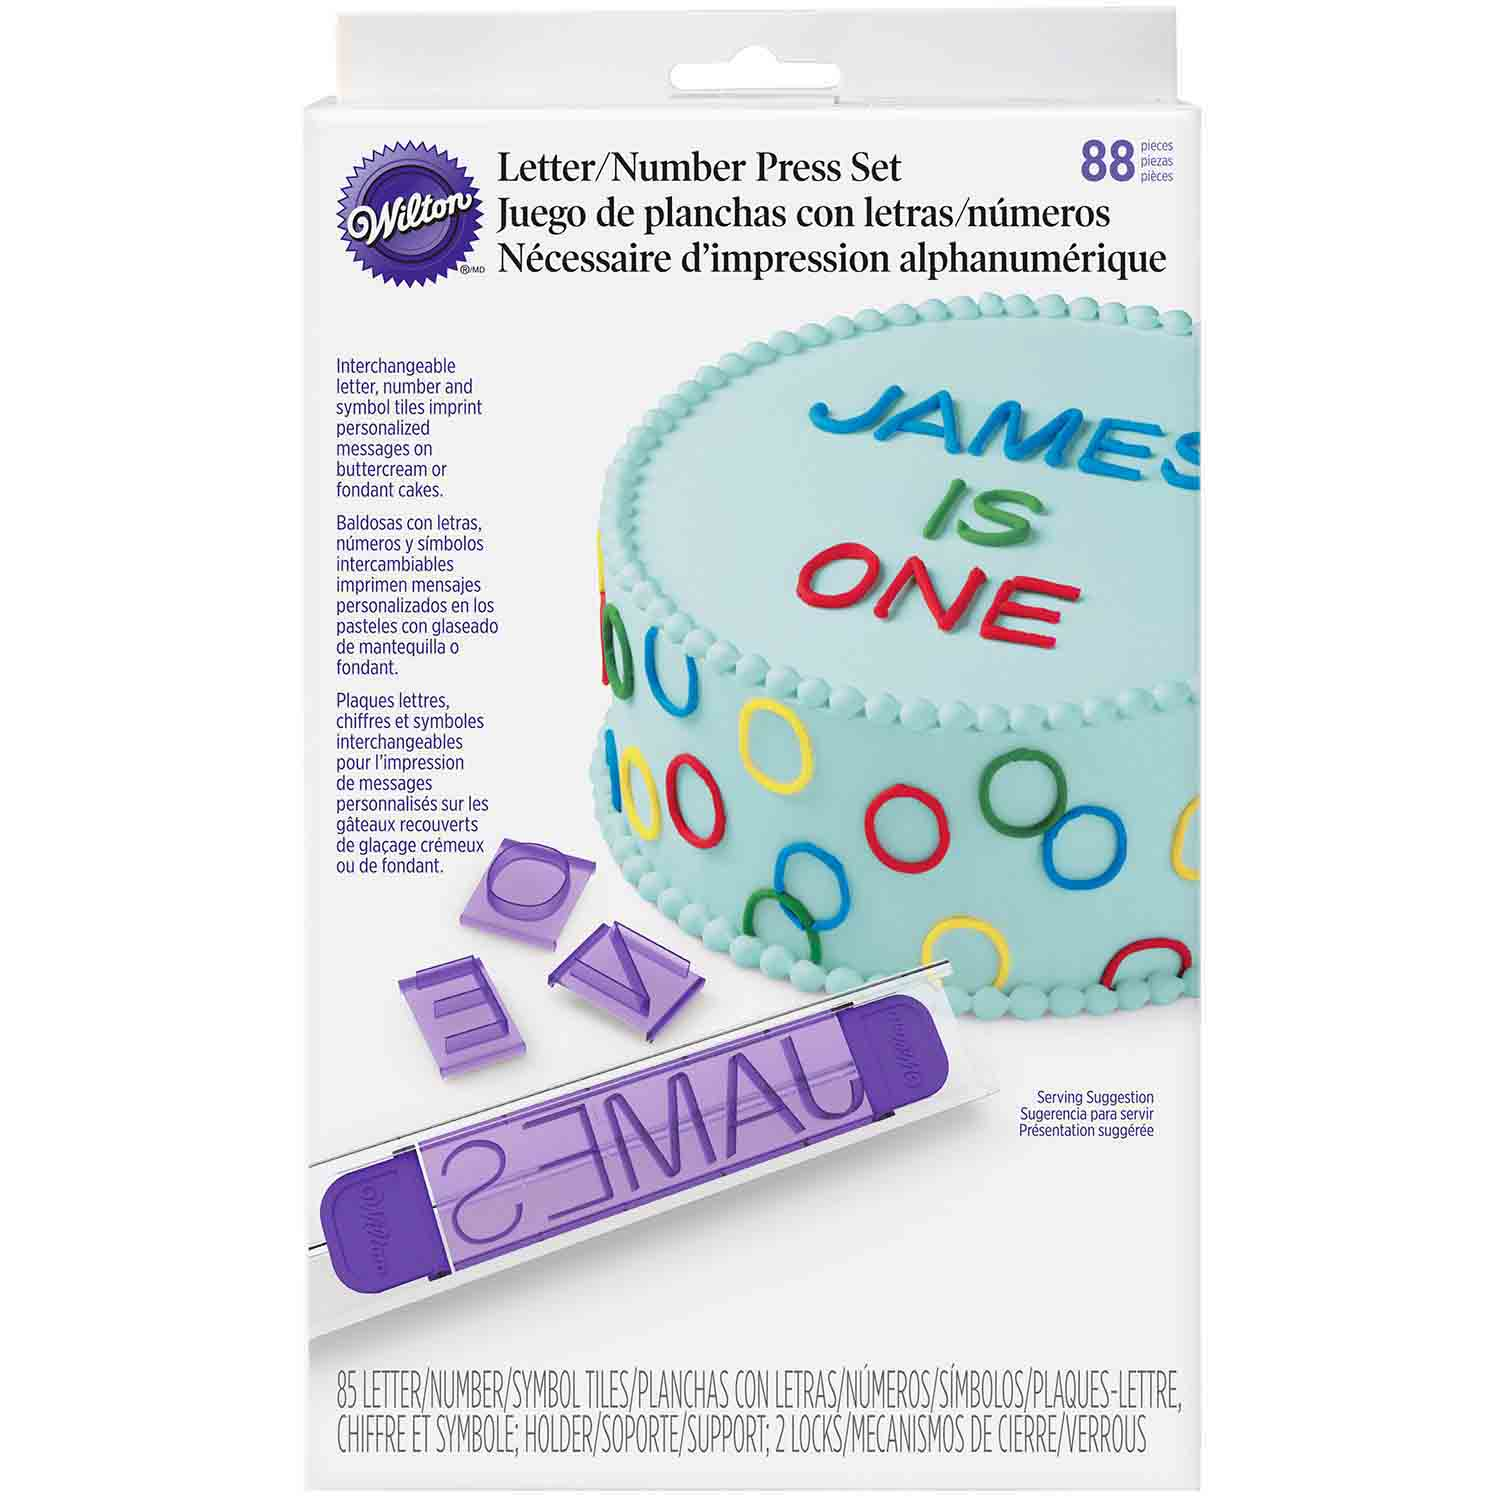 Letters and Numbers Press Set